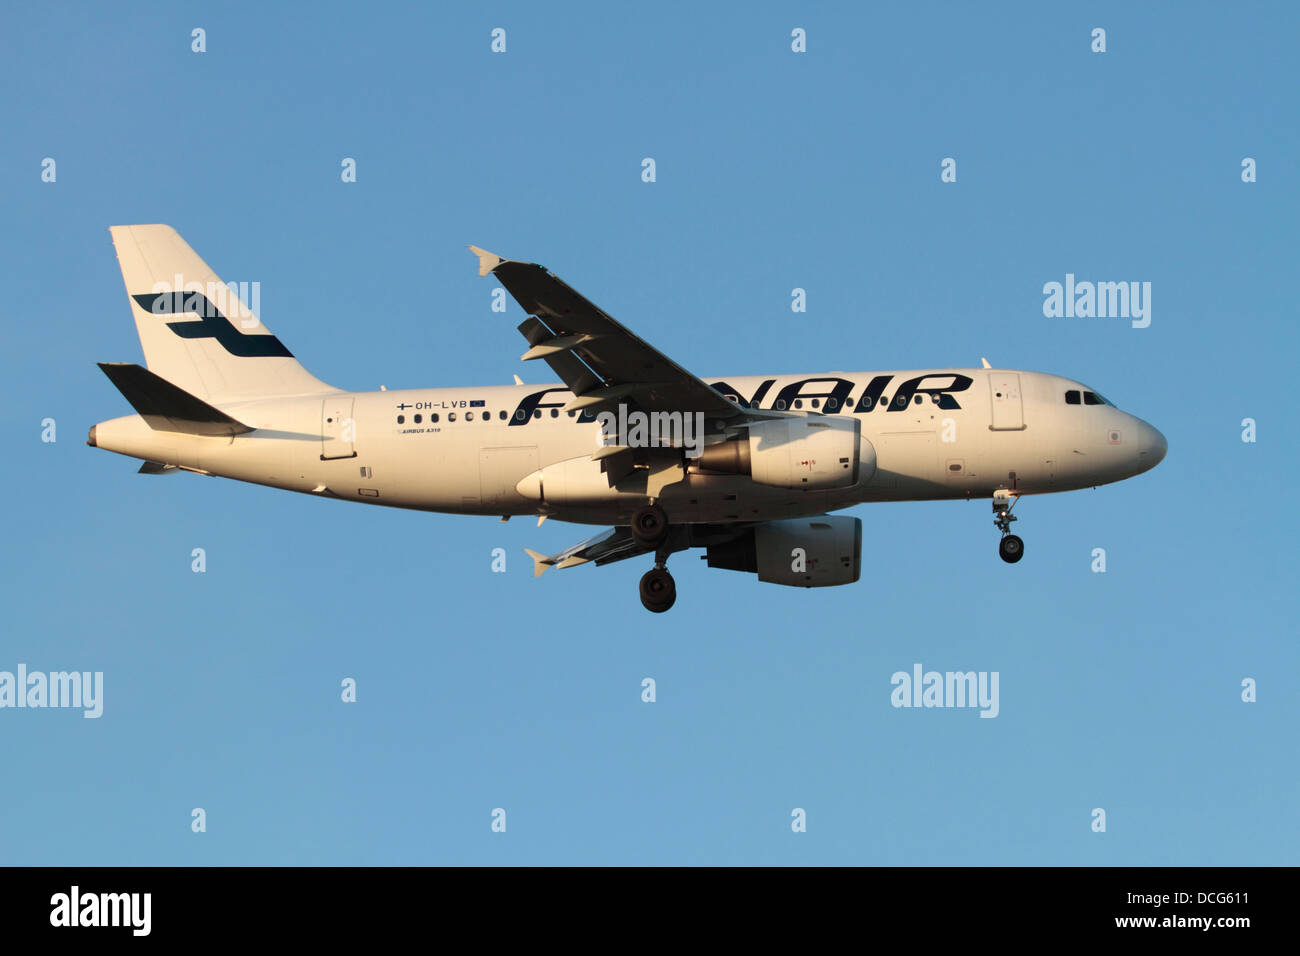 Commercial air travel. Finnair Airbus A319 passenger jet aeroplane on approach - Stock Image